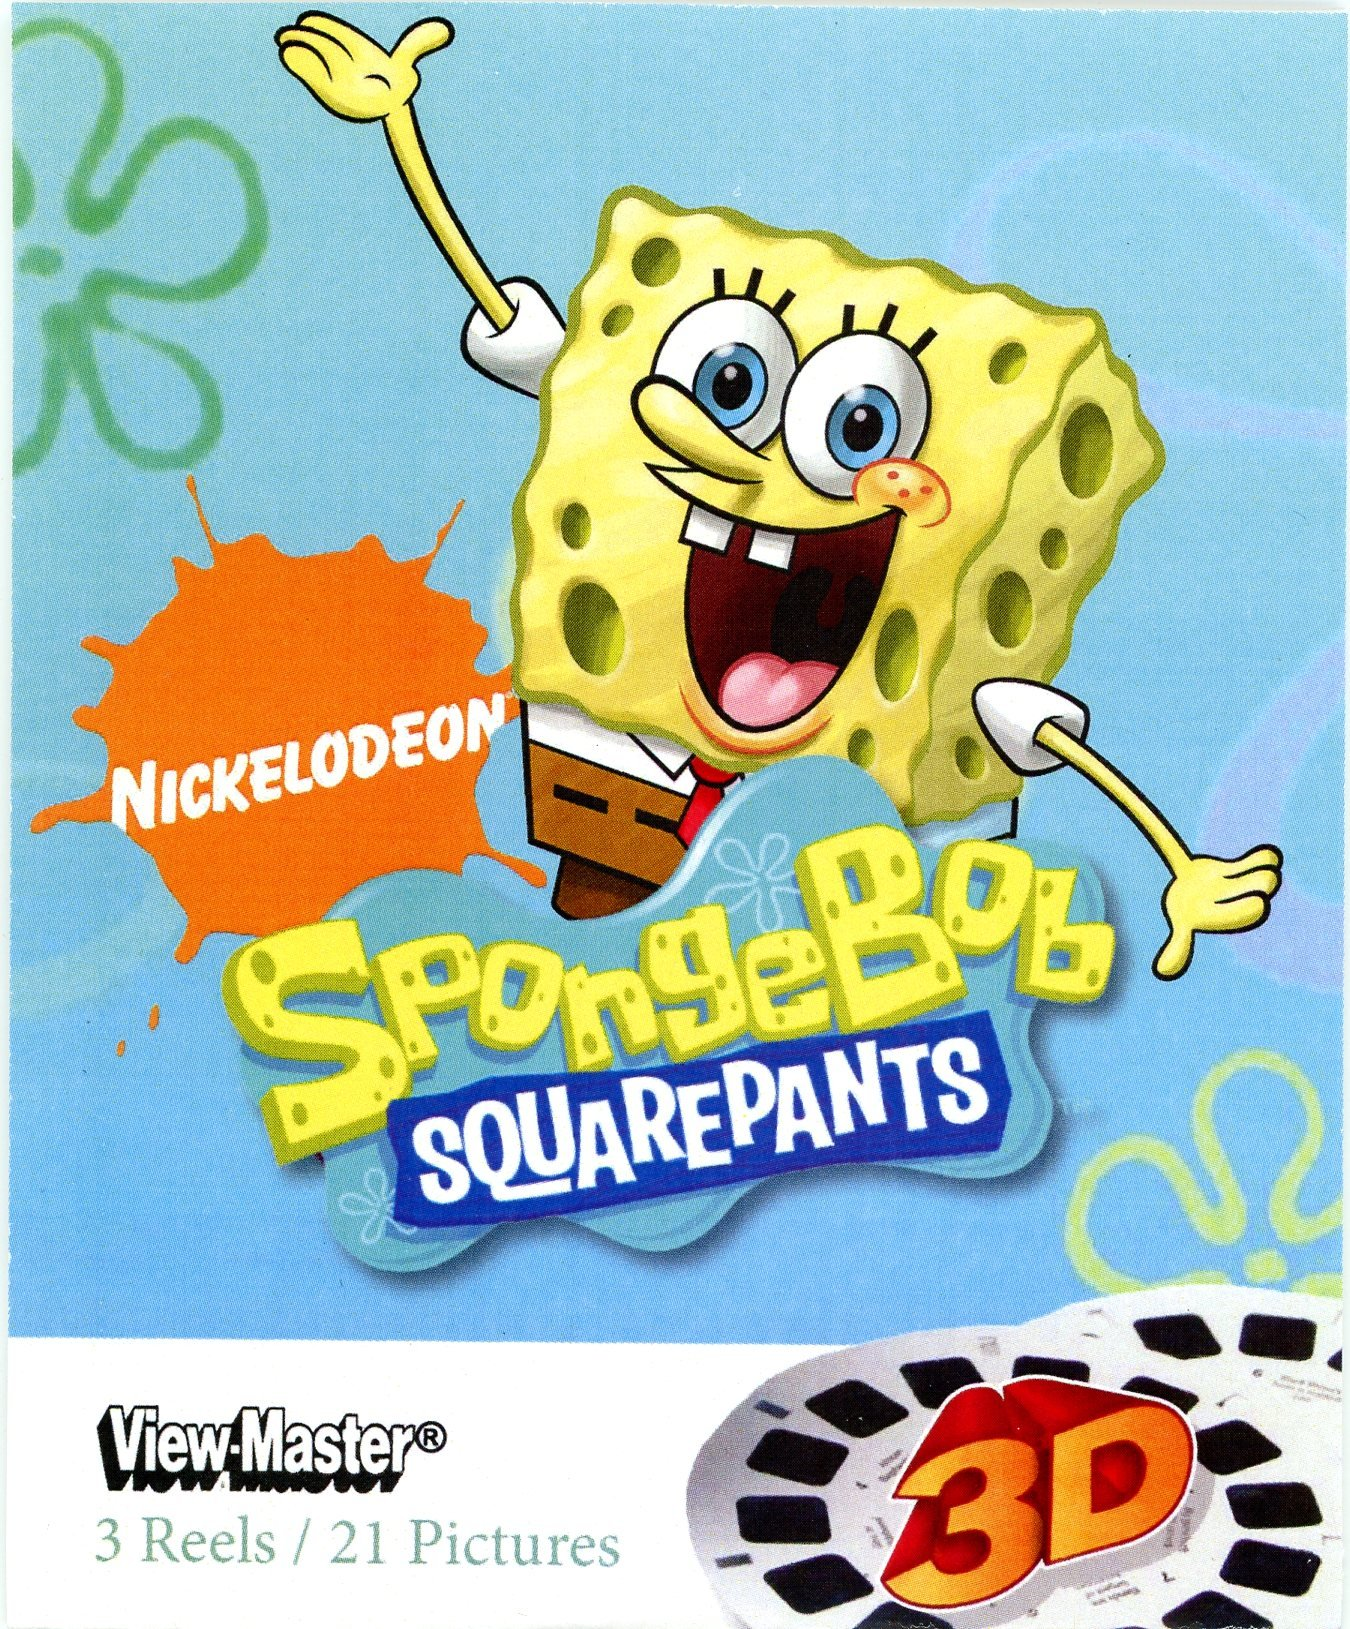 SpongeBob Squarepants 3D ViewMaster - 3 Reel Set by View Master (Image #1)